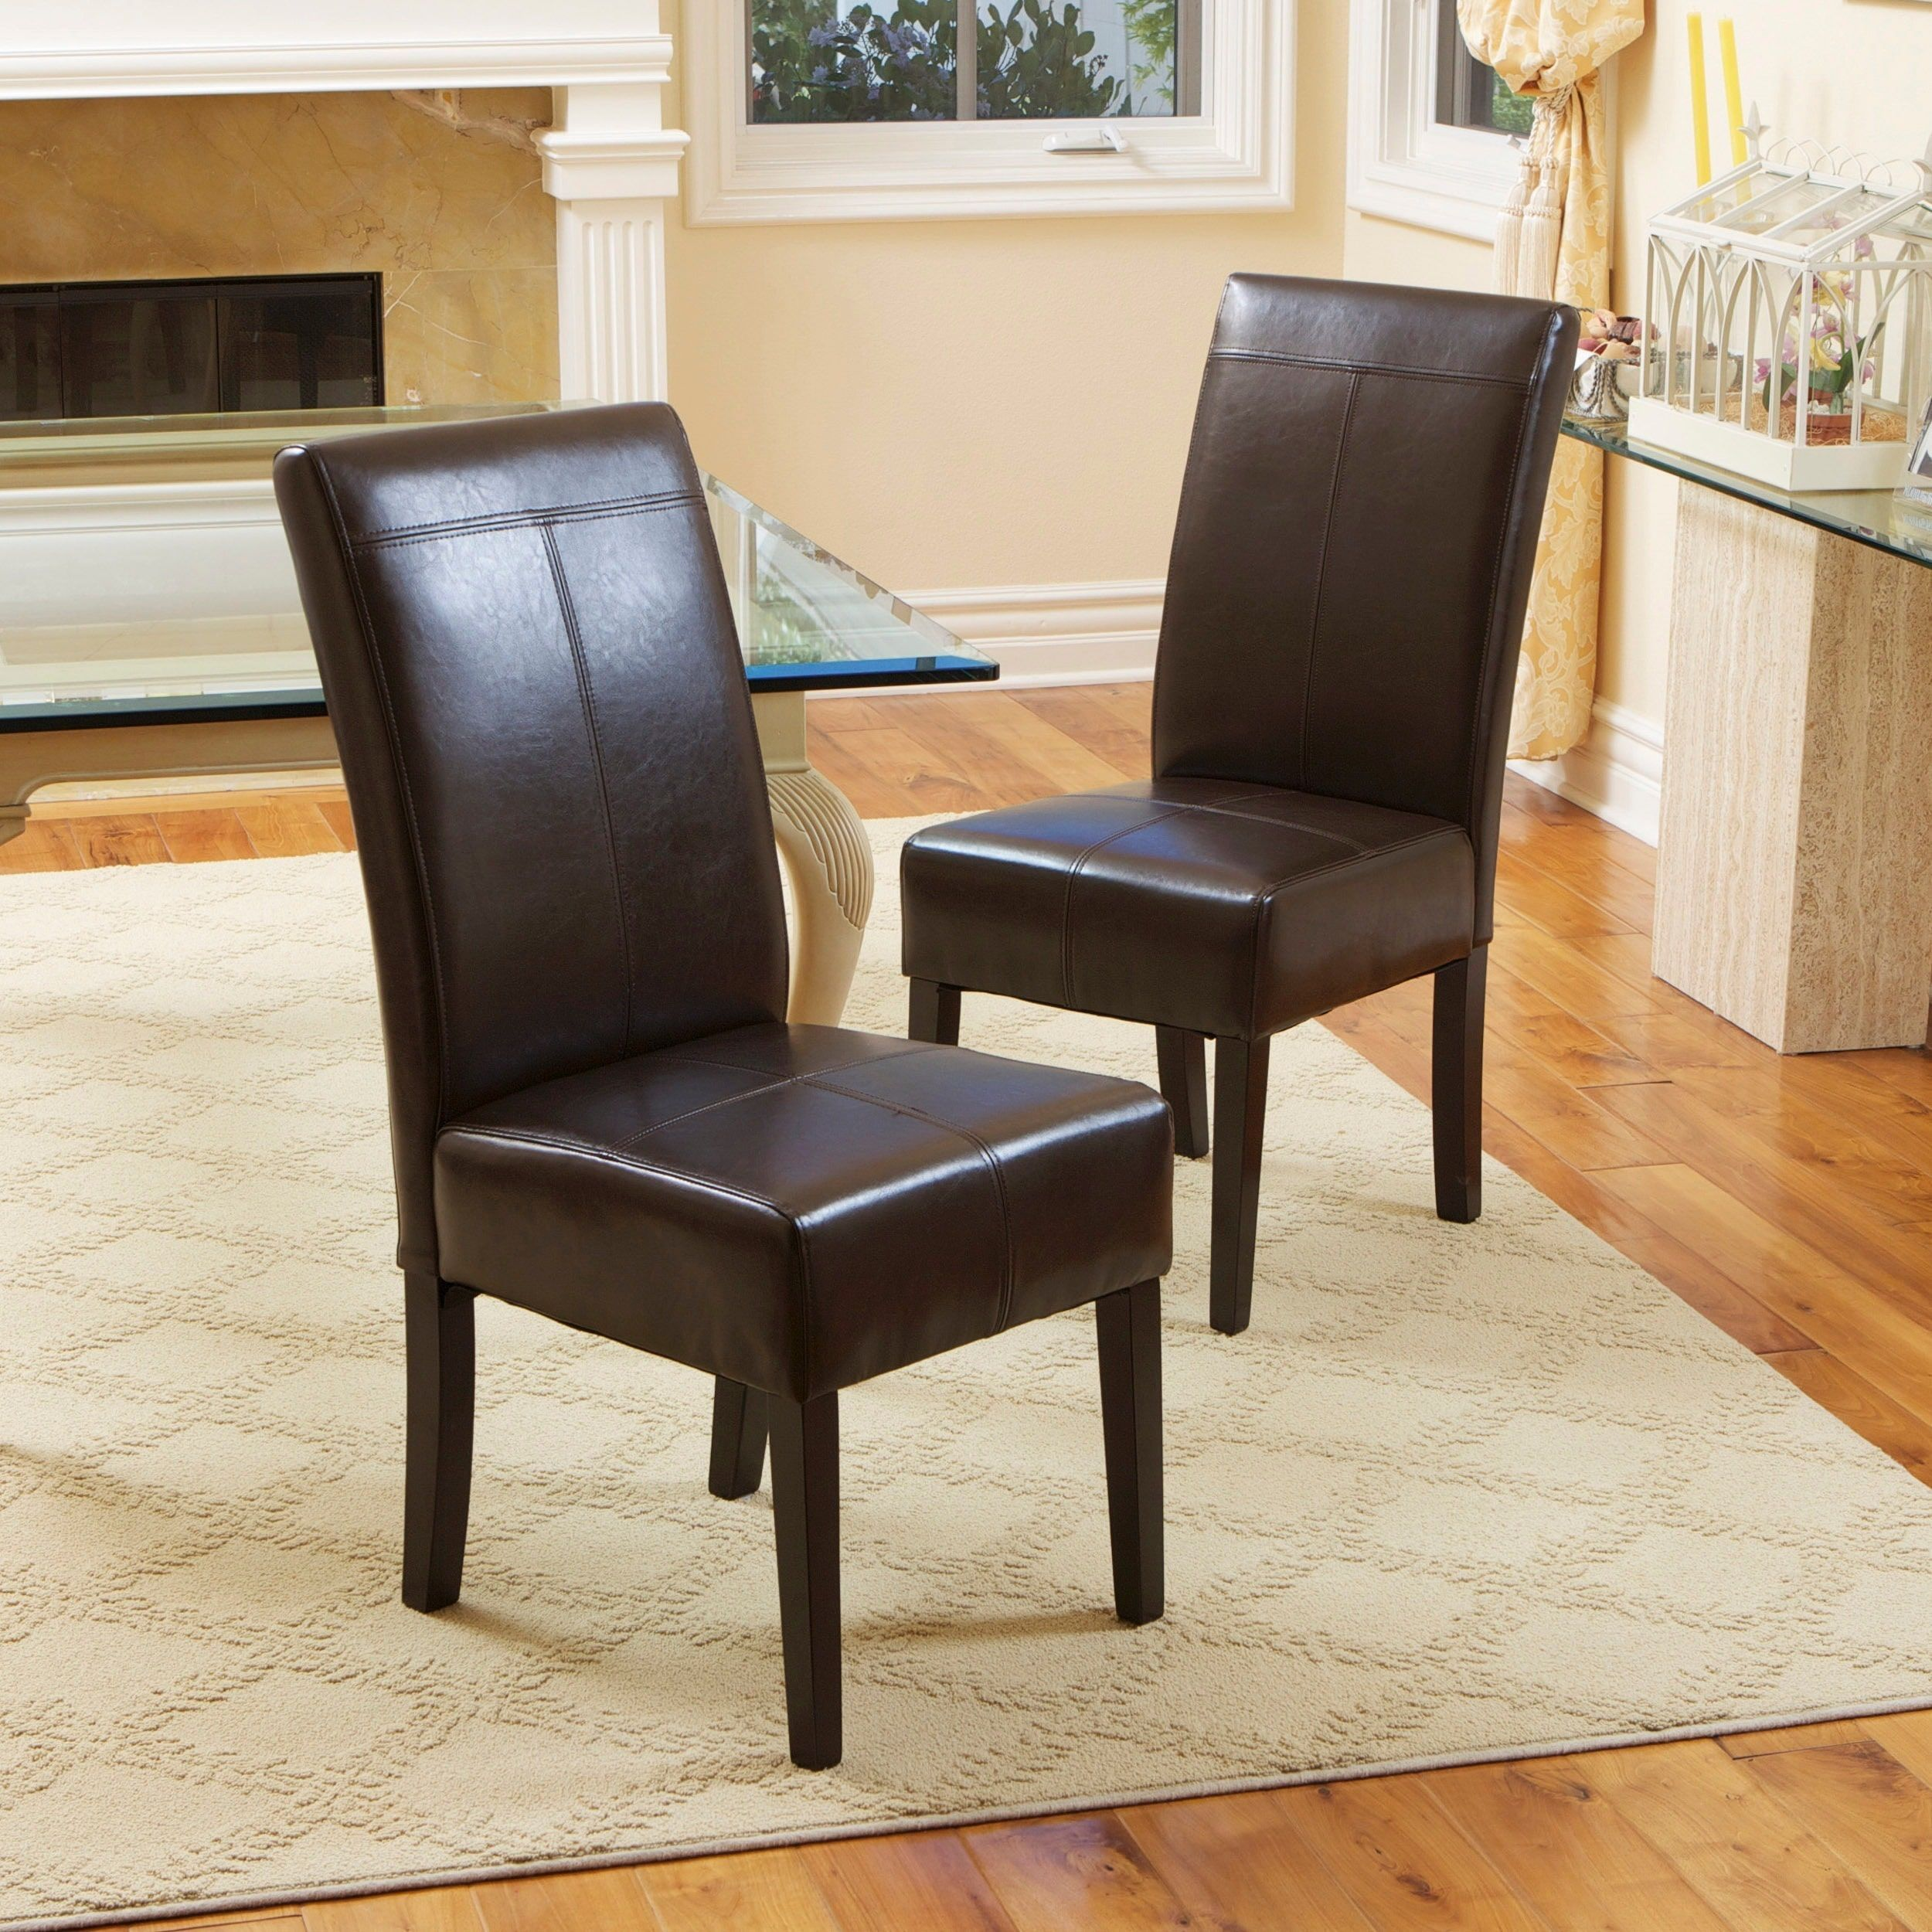 Christopher Knight Home T-stitch Brown Leather Dining Chairs